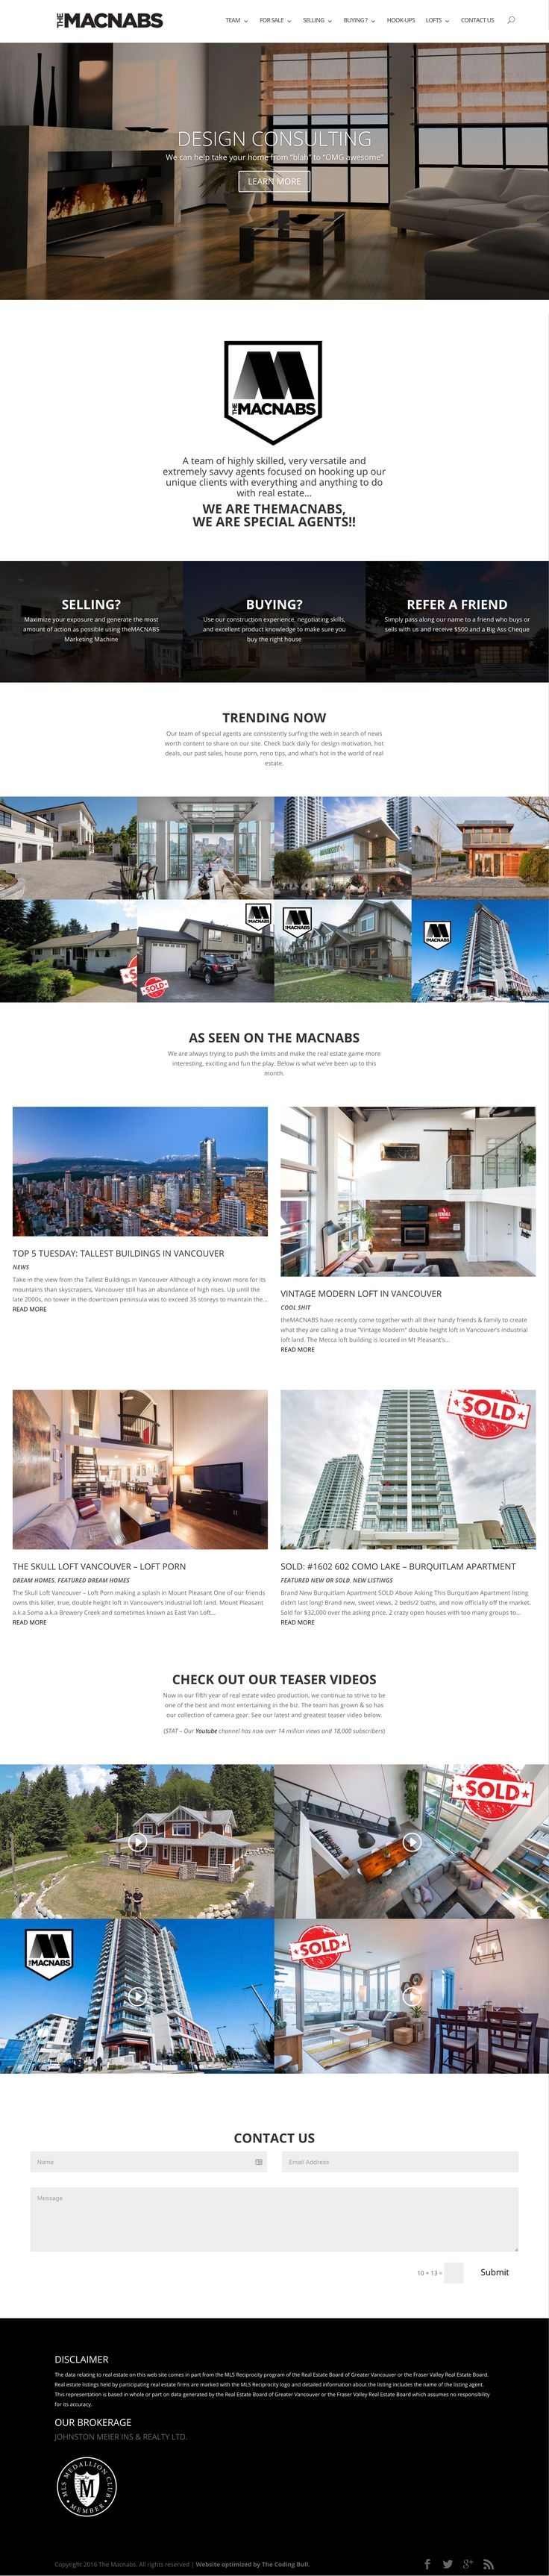 The Macnabs Real Estate Agent Website